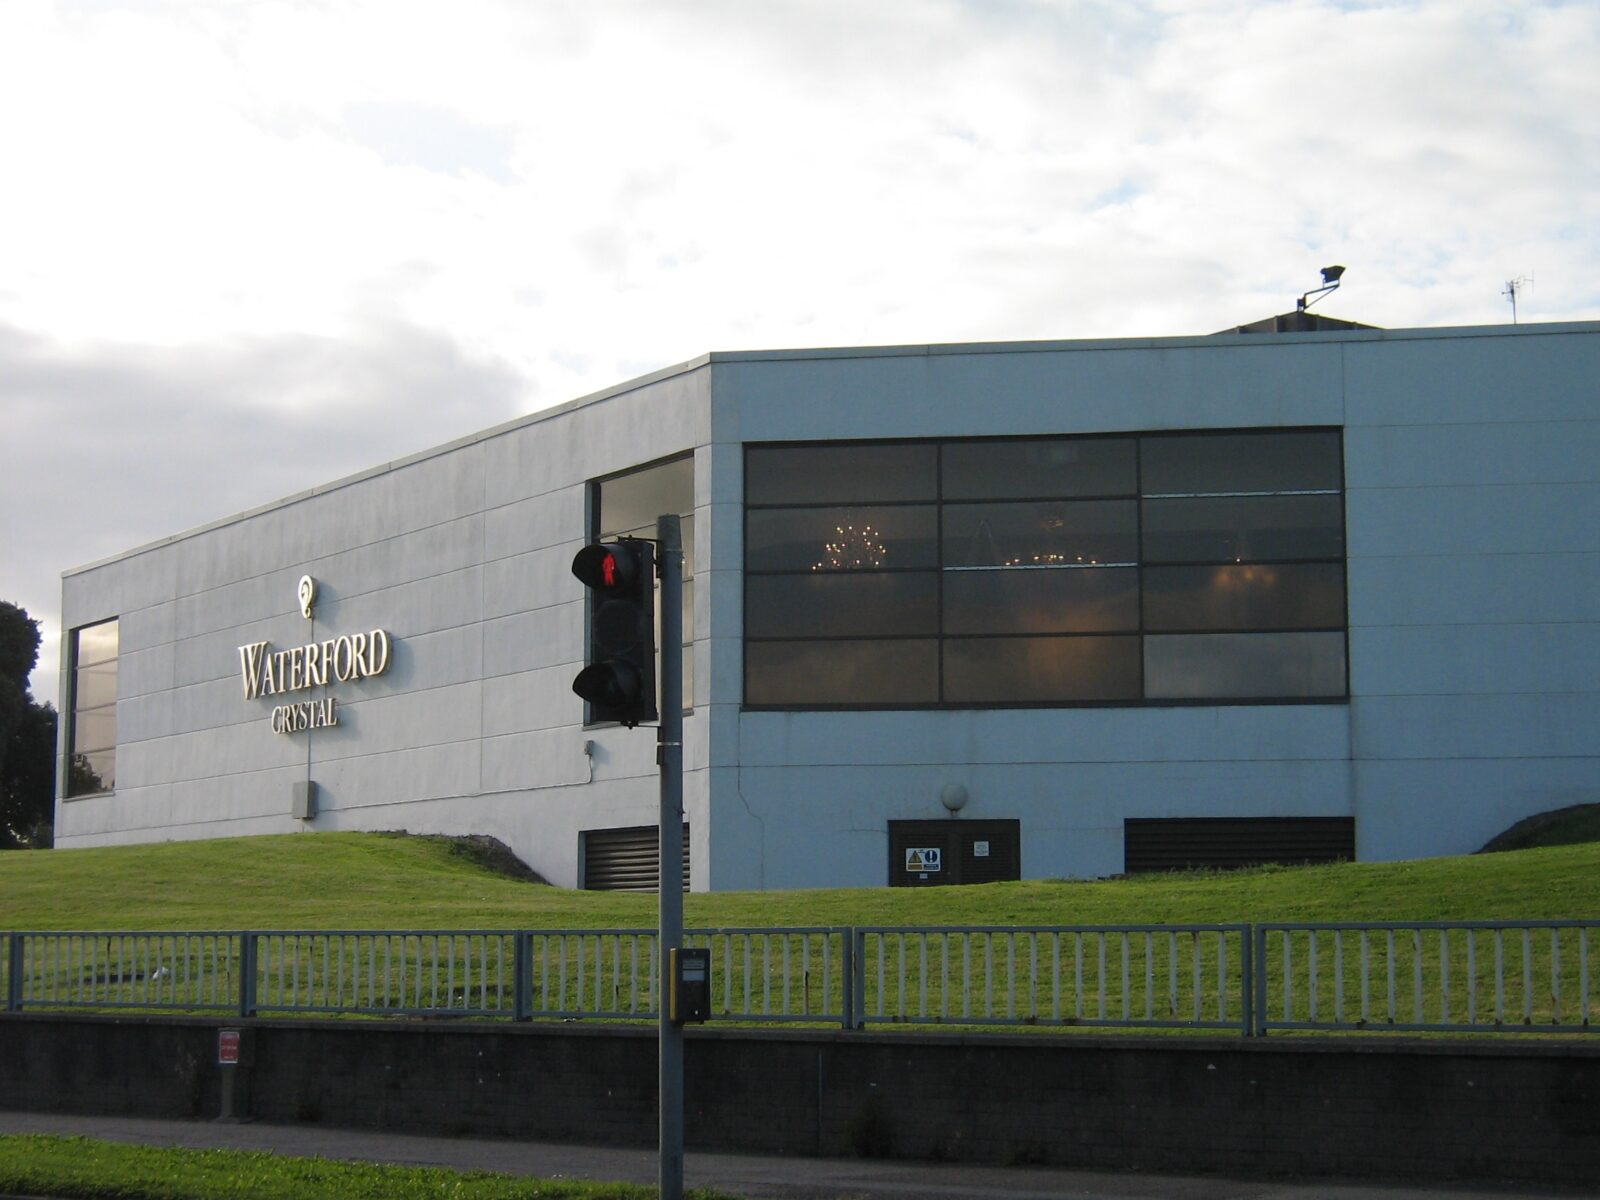 side shot from the outside of waterford crystal building